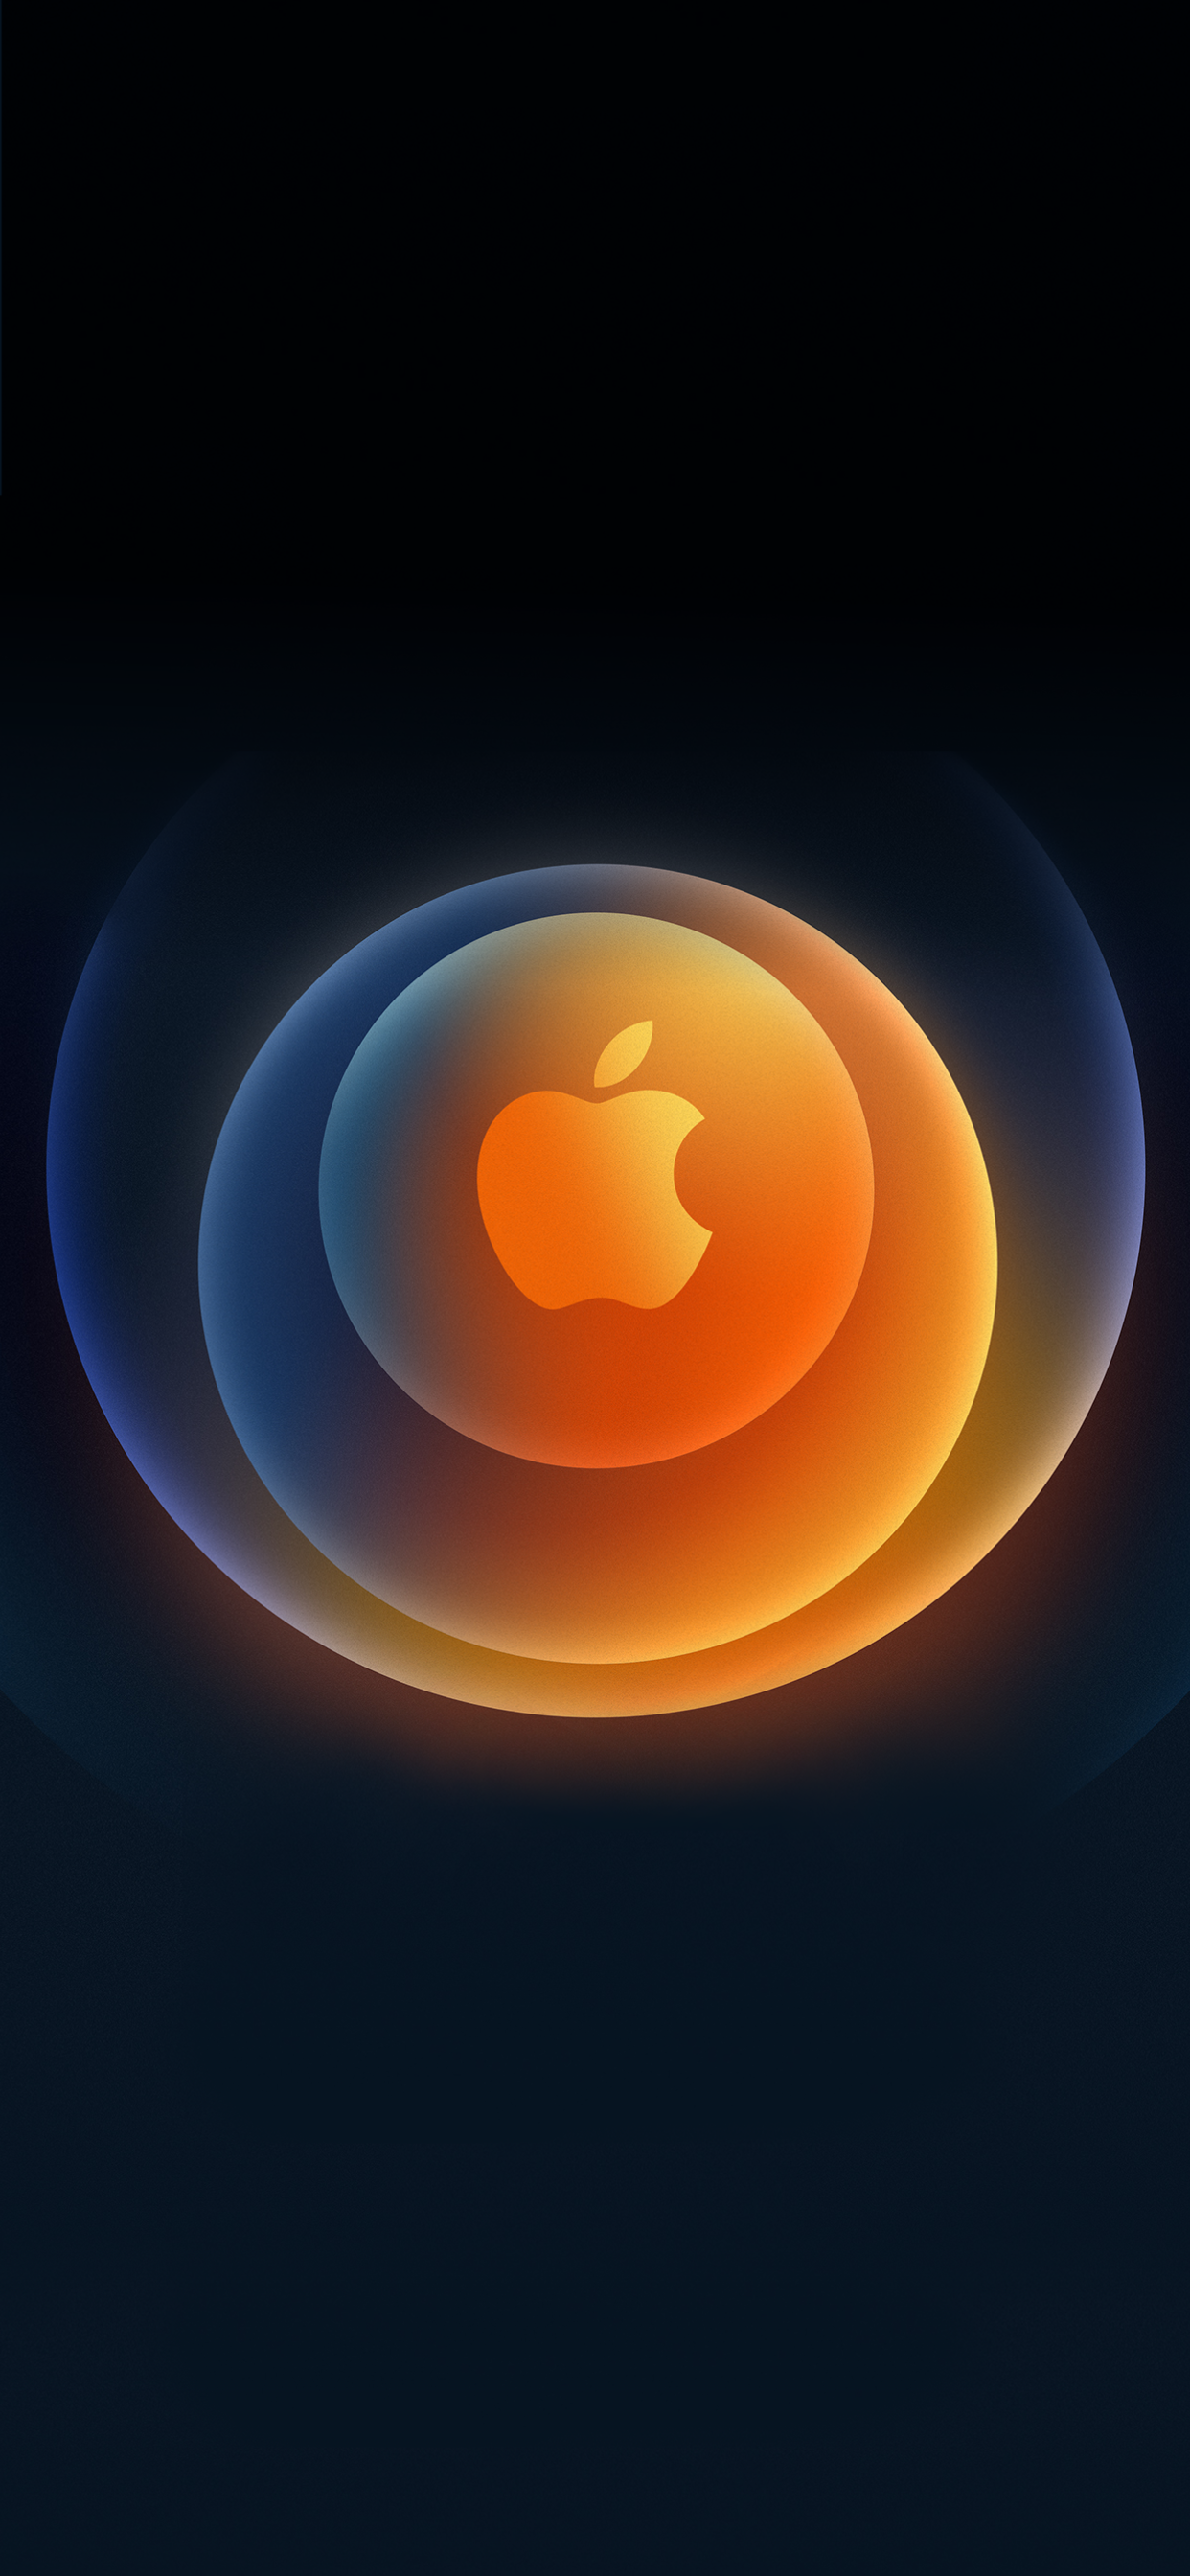 Hi Speed wallpapers Apple Event October 2020 iDownloadBlog iPhone jonnyb098